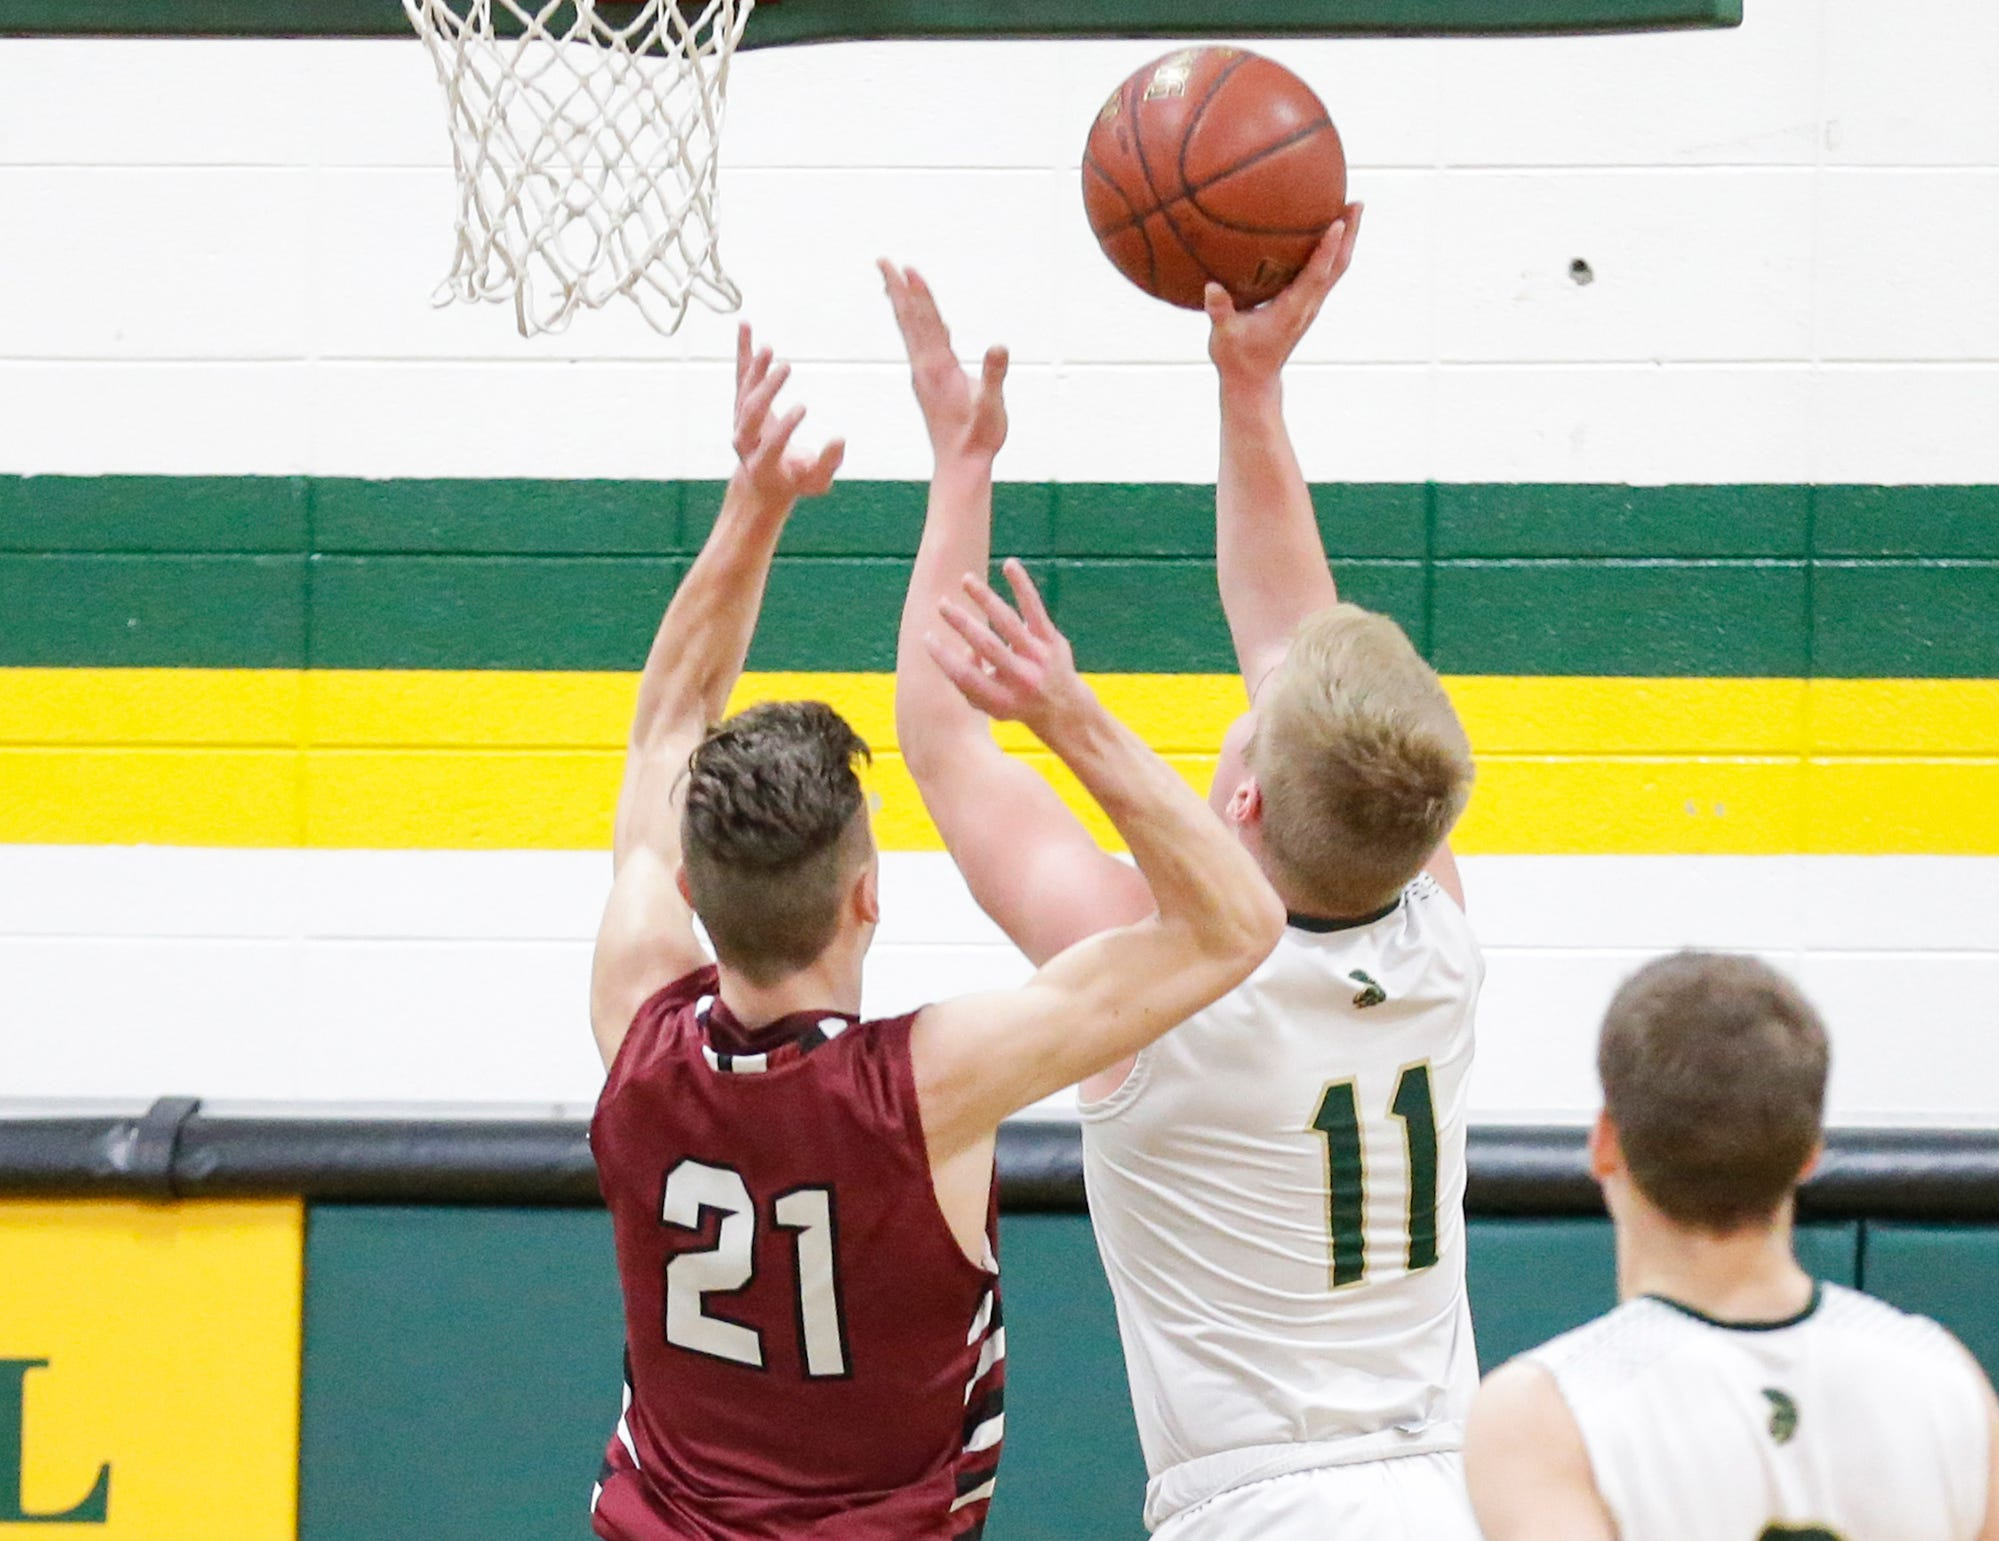 Laconia High School boys basketball's Eli Leonard goes up for a basket against Mayville High School's Jackson Mittelstadt during their game Friday, January 25, 2019 in Rosendale. Laconia won the game 80-54. Doug Raflik/USA TODAY NETWORK-Wisconsin